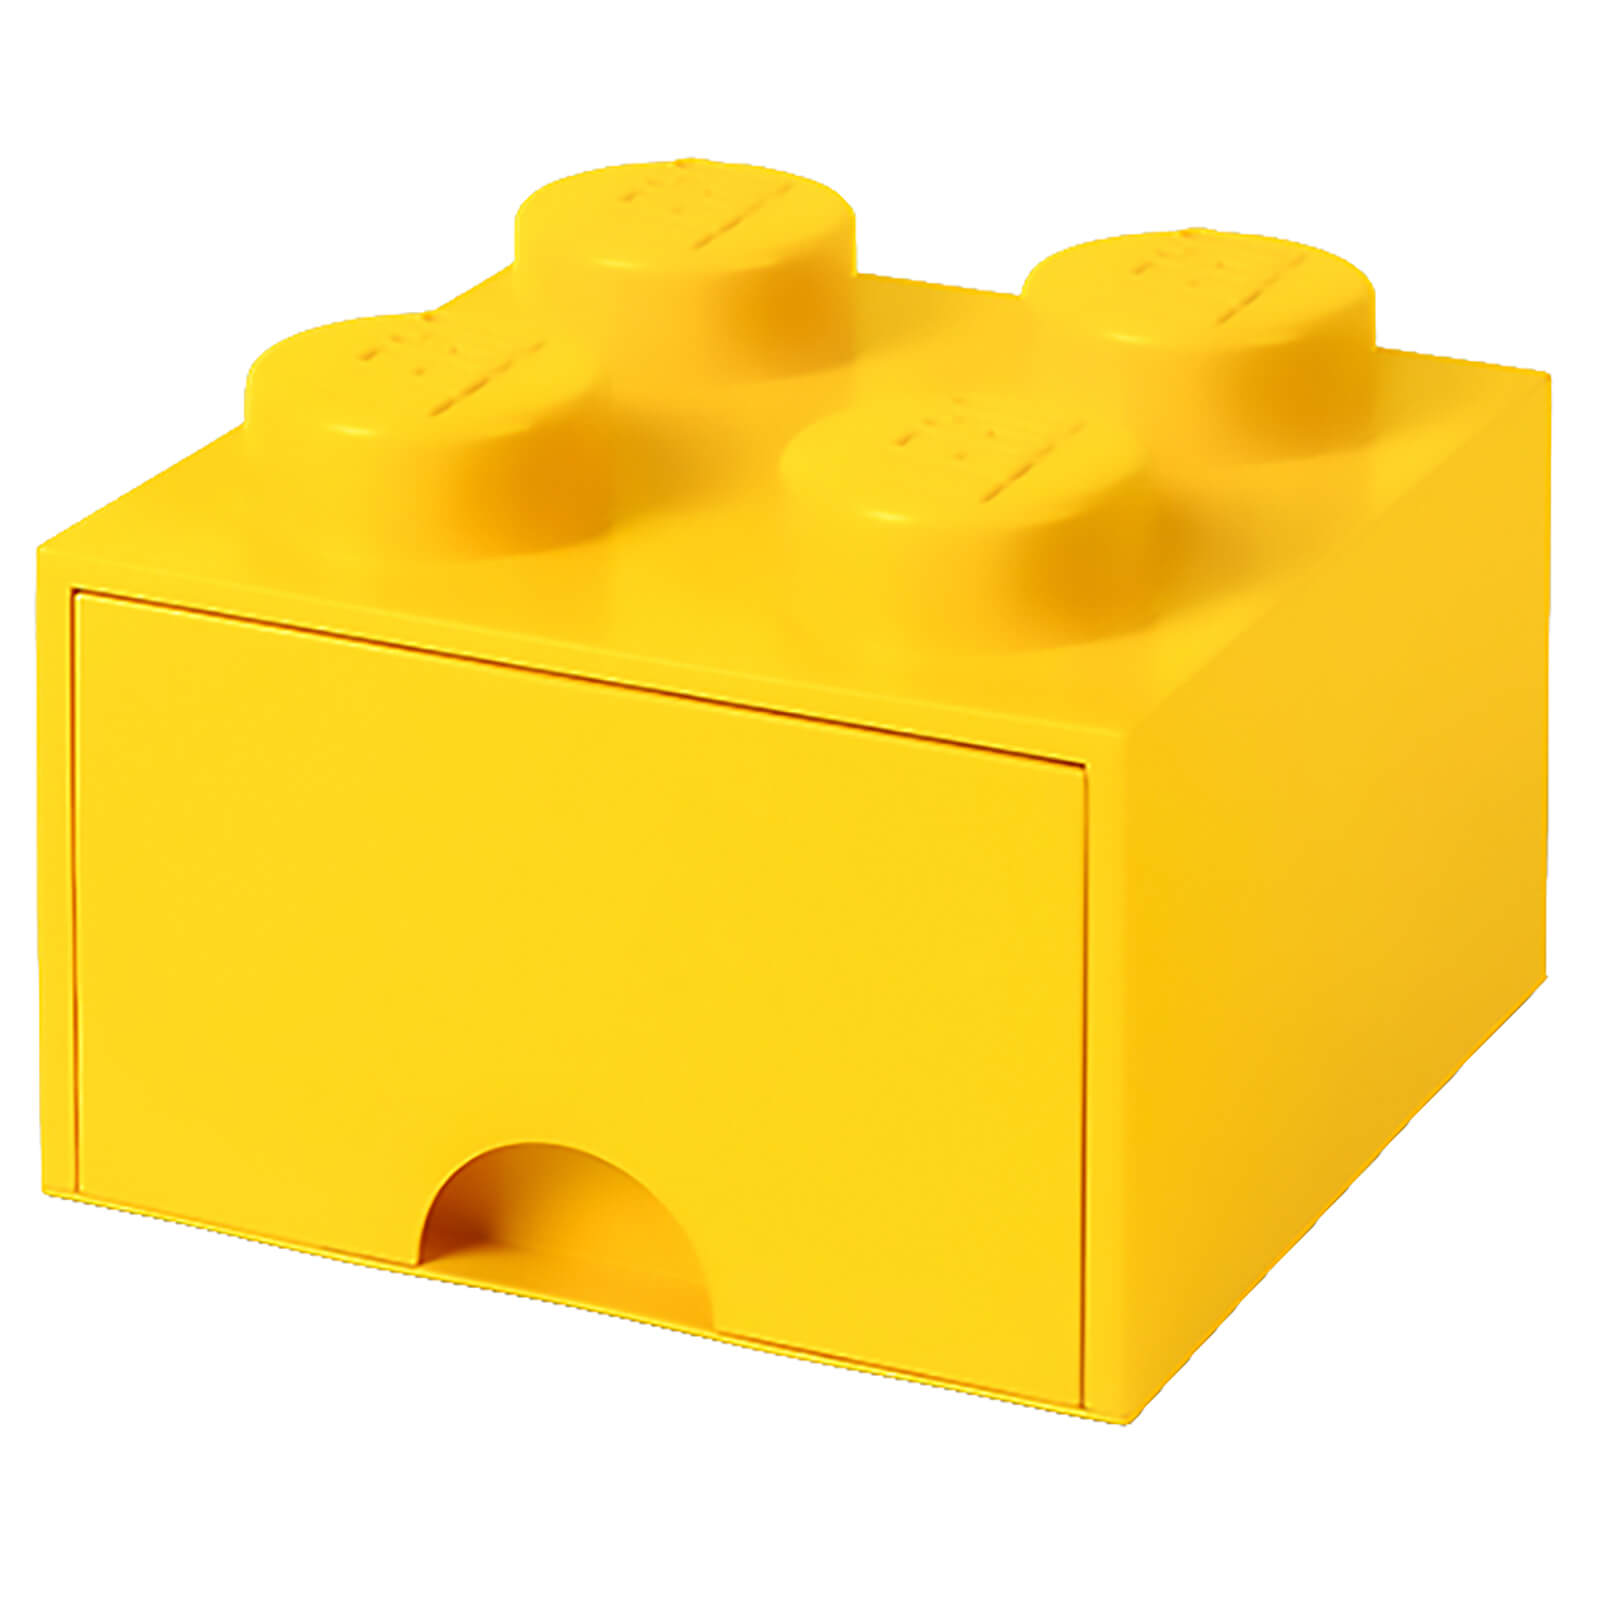 LEGO Storage 4 Knob Brick - 1 Drawer (Bright Yellow)